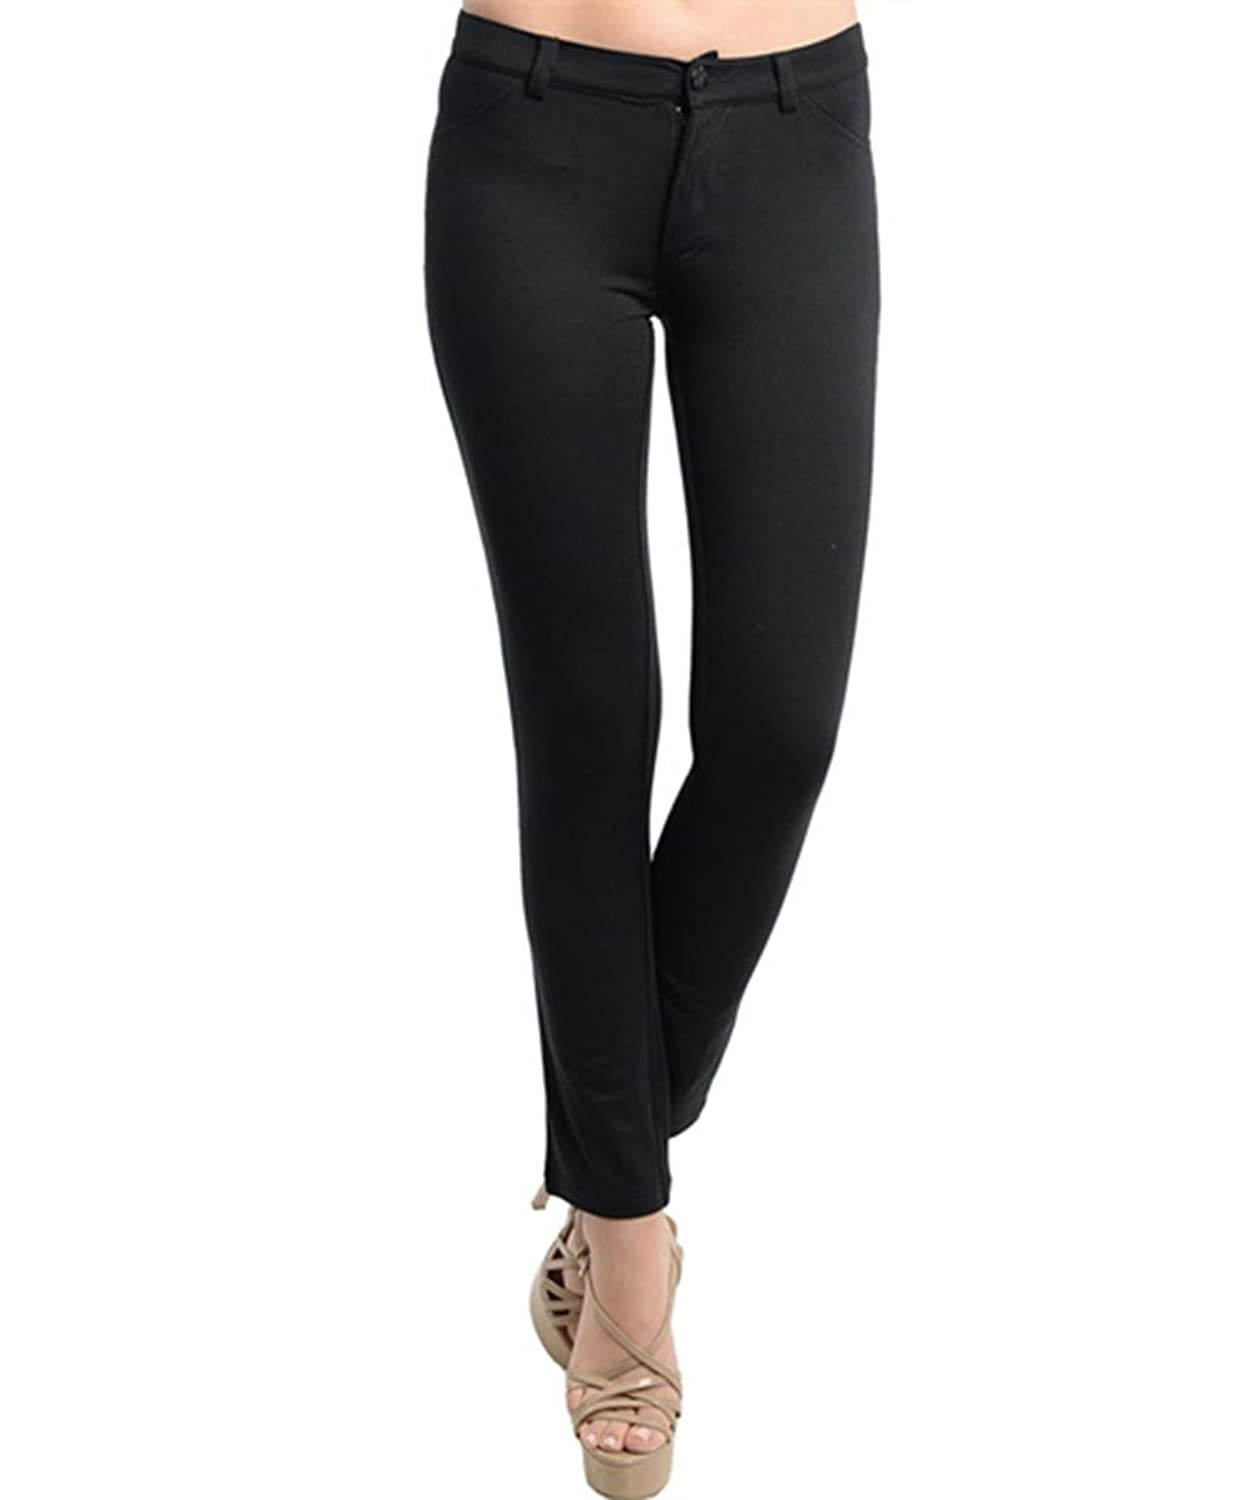 Simplicity Women's Trousers w Mock Front & Functional Back PocketsBlack